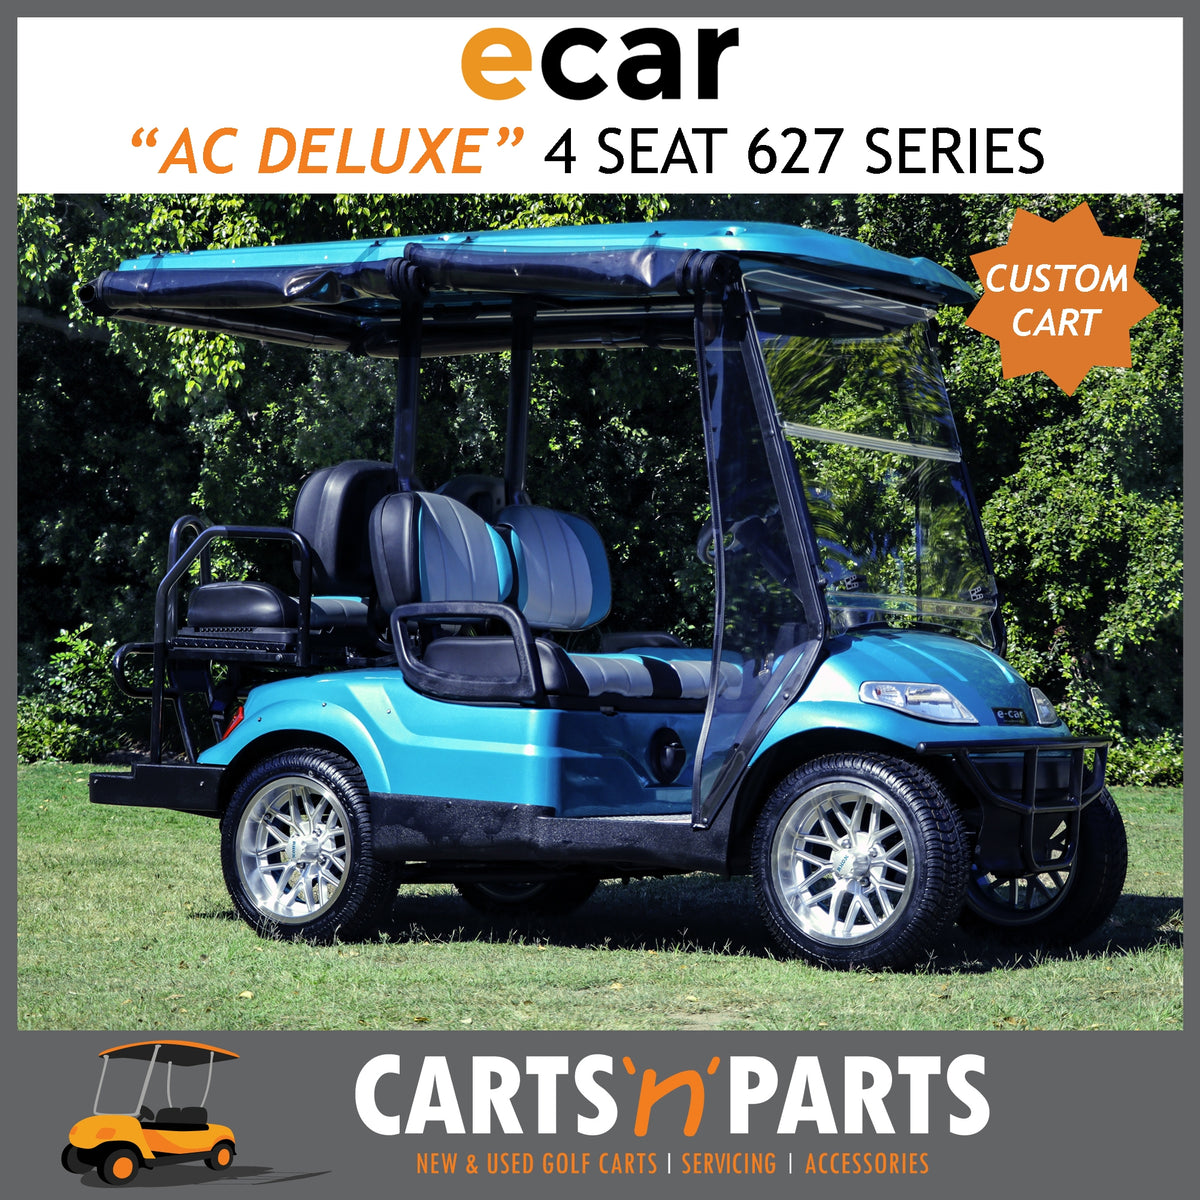 ecar ac power deluxe 4 seat new golf cart buggy 627 series. Black Bedroom Furniture Sets. Home Design Ideas